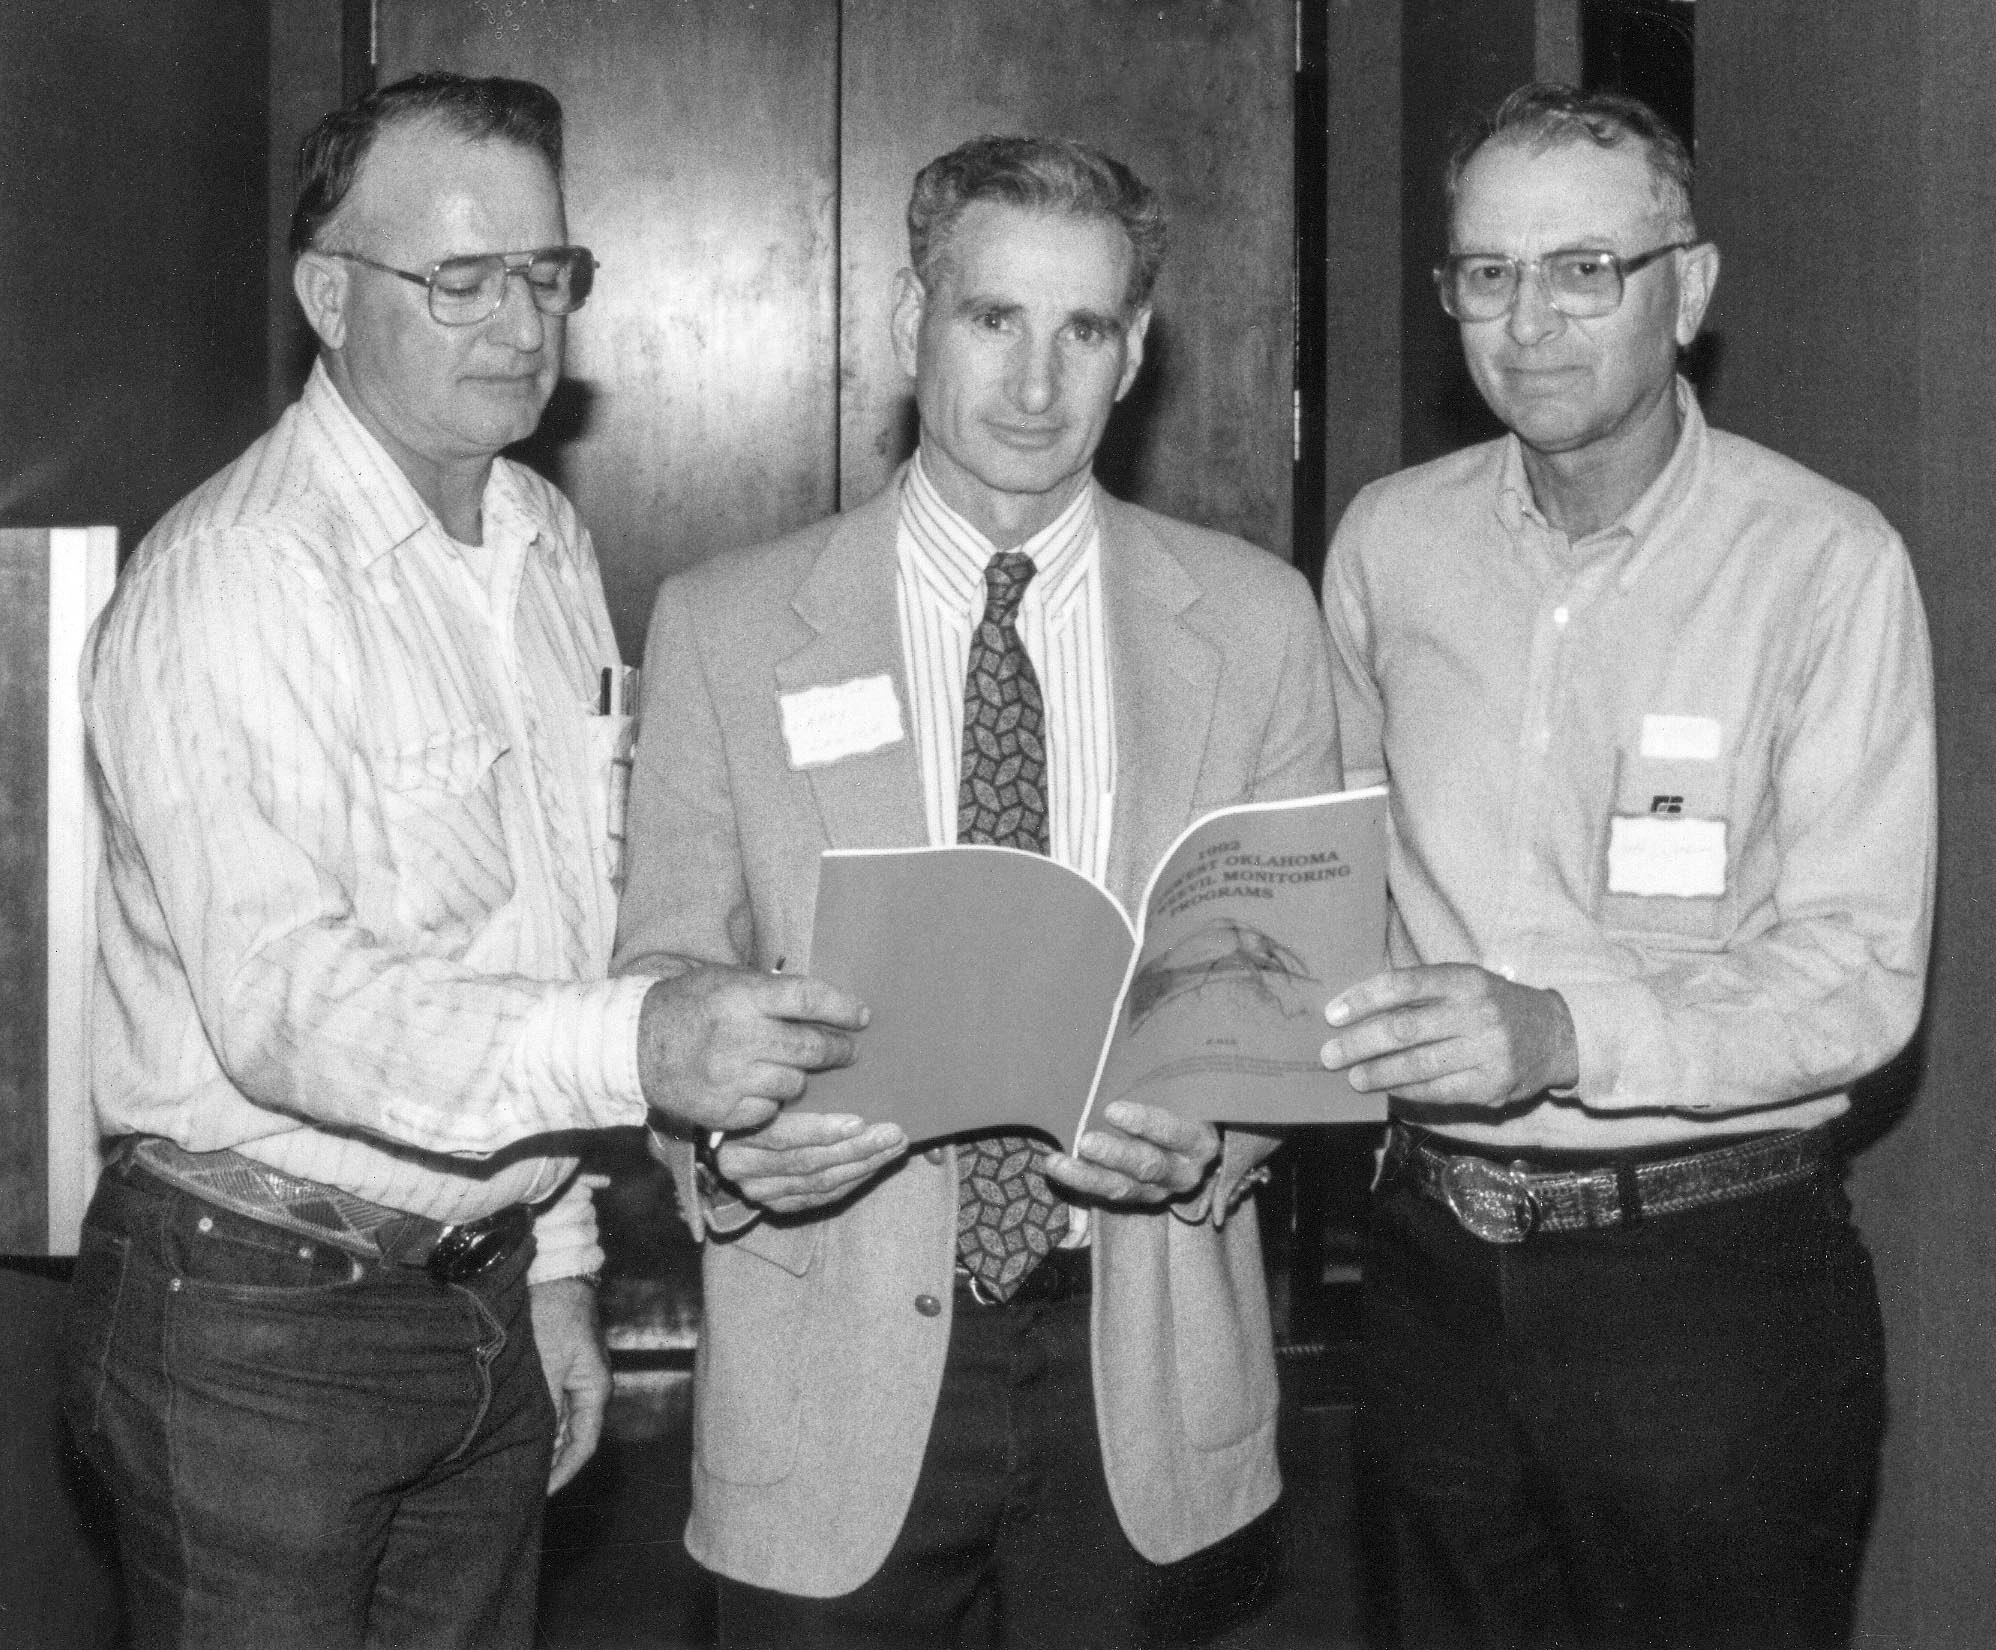 In 1993, boll weevil problems were a popular topic among farmers. In order to provide farmers and legislators with information concerning boll weevil eradication, Stephens County Farm Bureau held a meeting in late March at the Red River Vo-Tech. Pictured here is Oklahoma Sen. Larry Lawler, center, looking over boll weevil eradication facts with Stephens County President Bill Nunley (left) and Oklahoma Farm Bureau Board Member Ralph Dickson. Lawler was the Vice Chairman of the Senate Agriculture Committee.